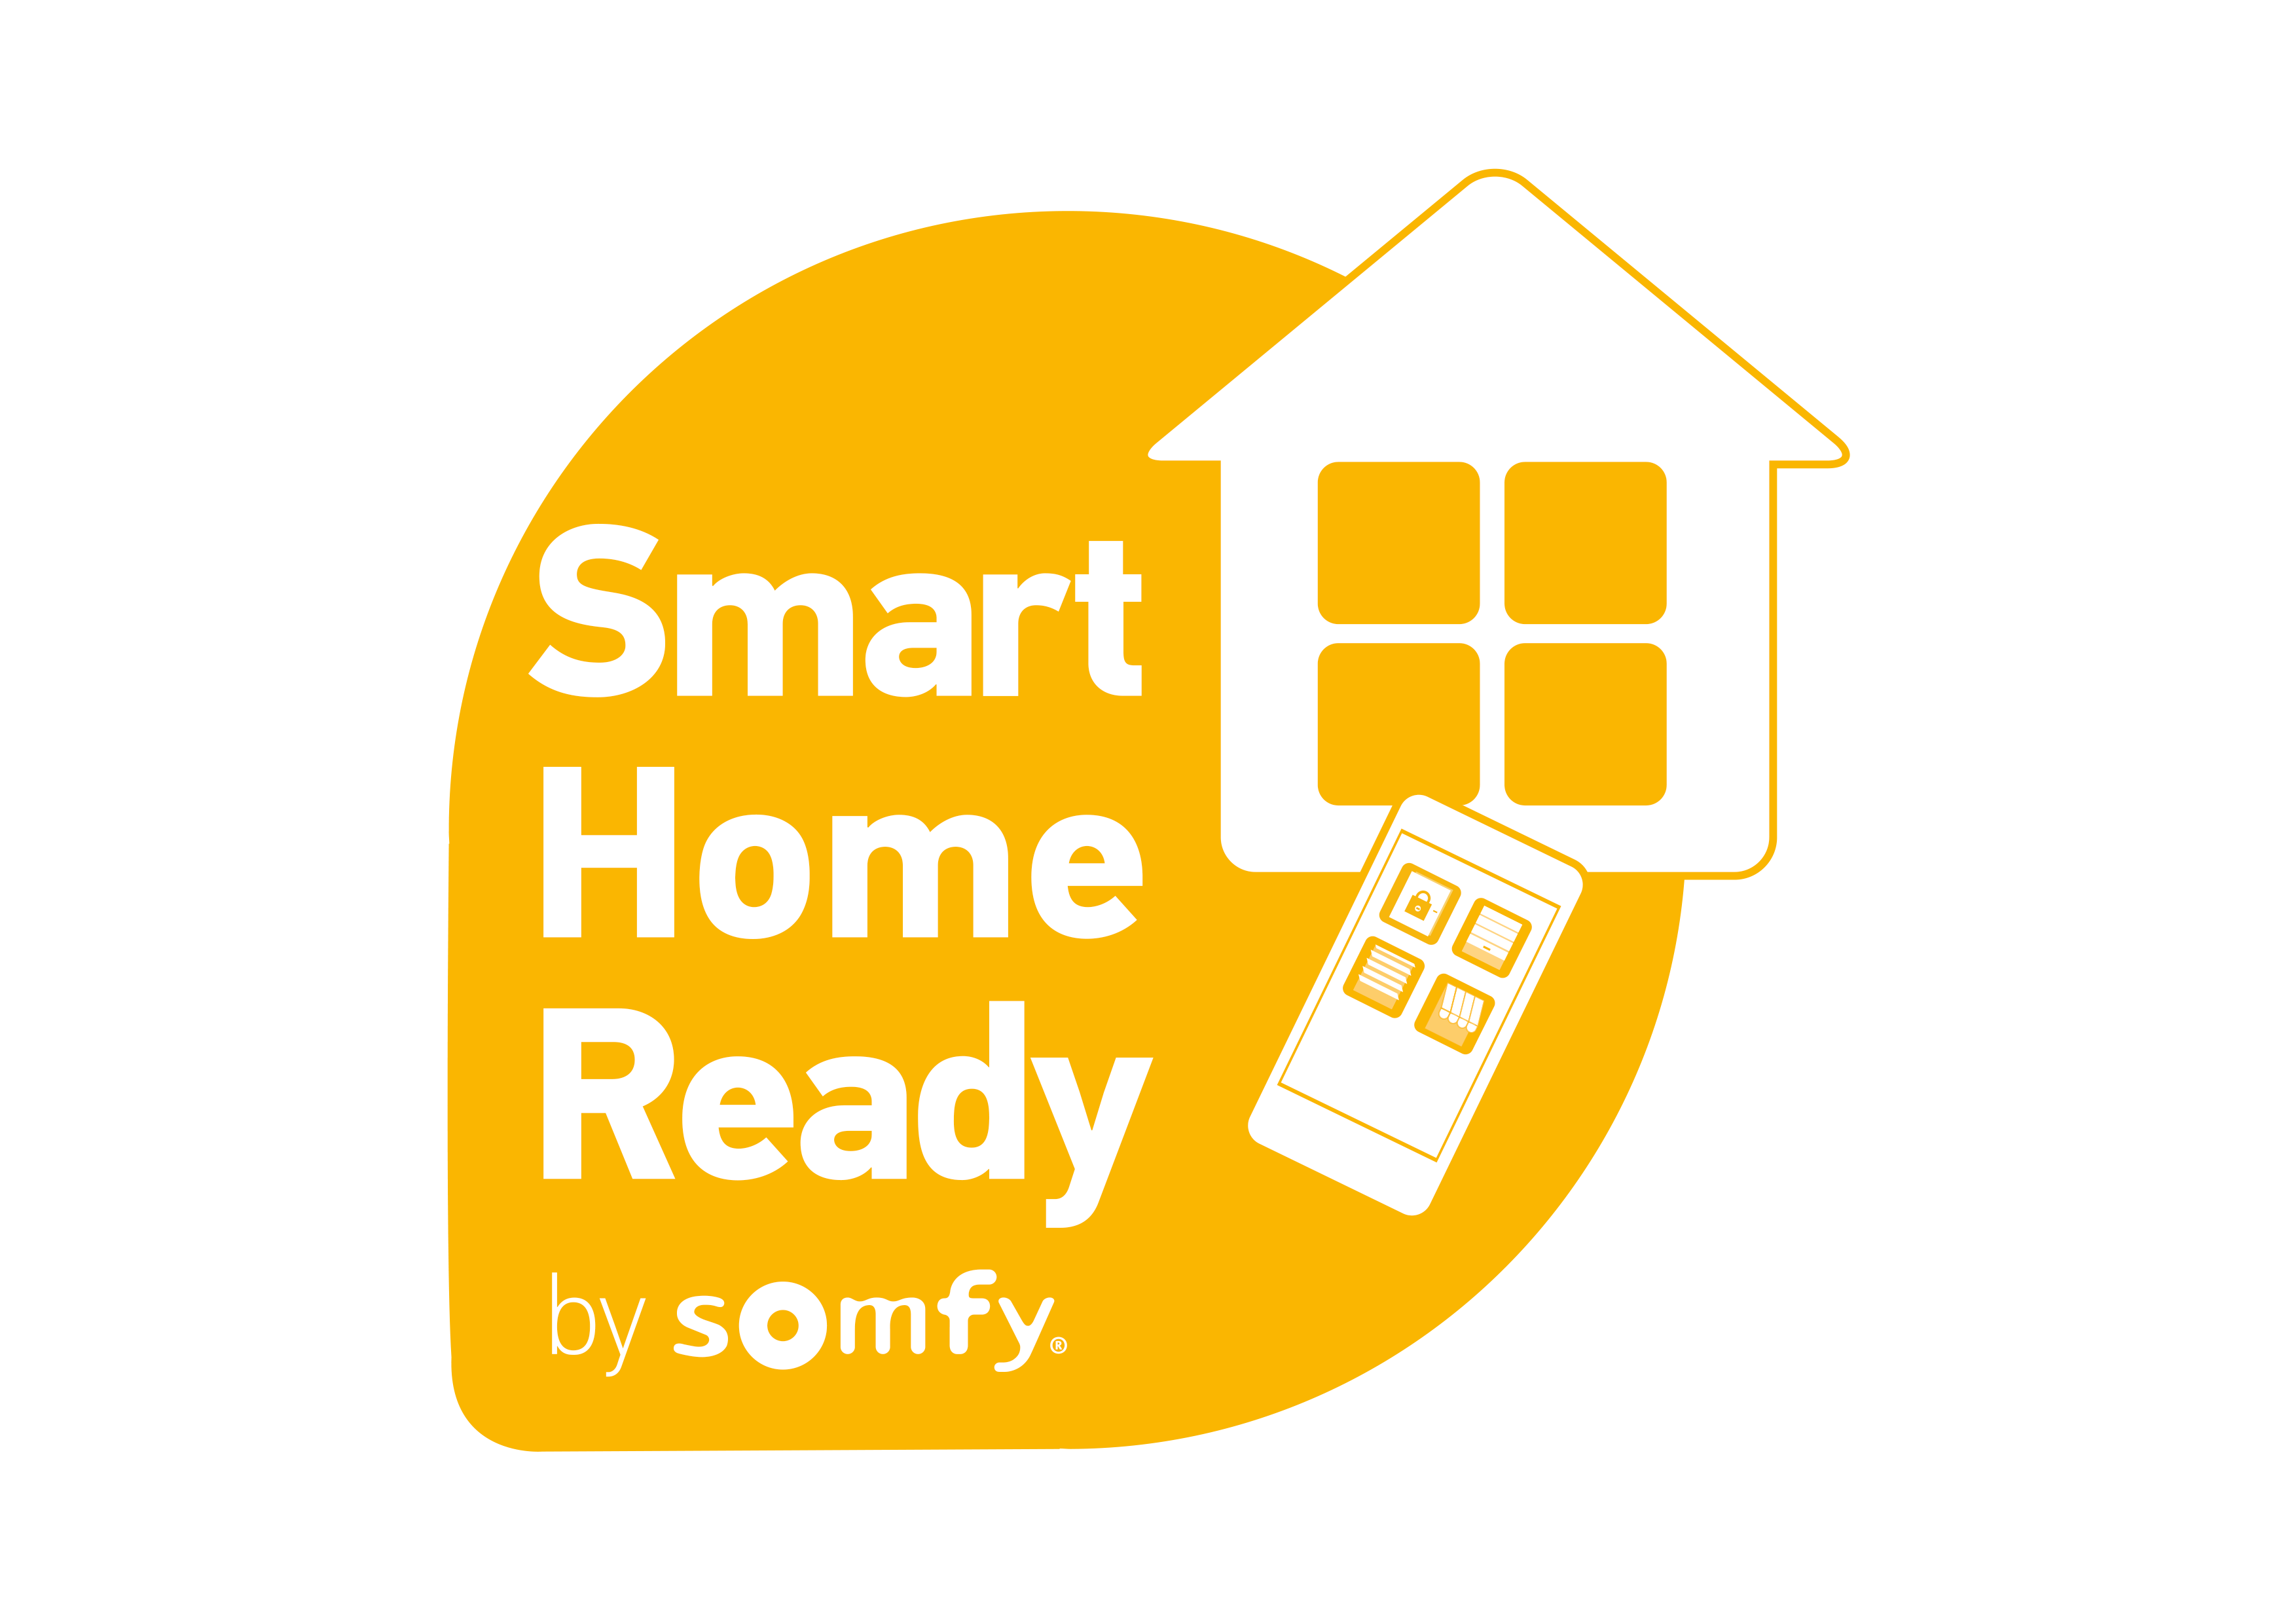 Smart Home Ready 2019 07 Original 23450